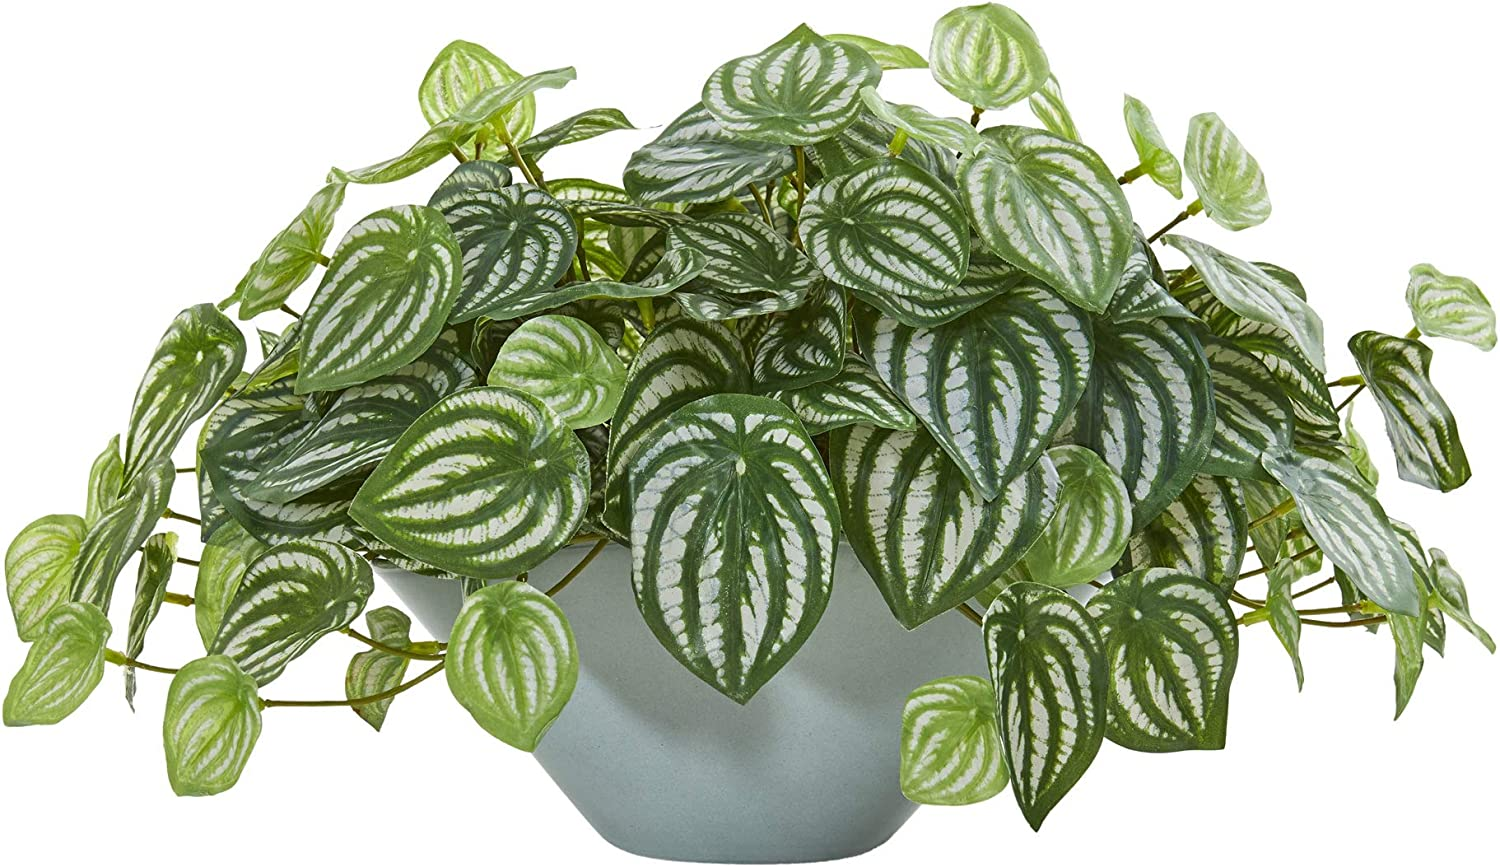 Nearly Natural 19 Watermelon Peperomia Artificial Green Vase Real Touch Silk Plants Furniture Decor